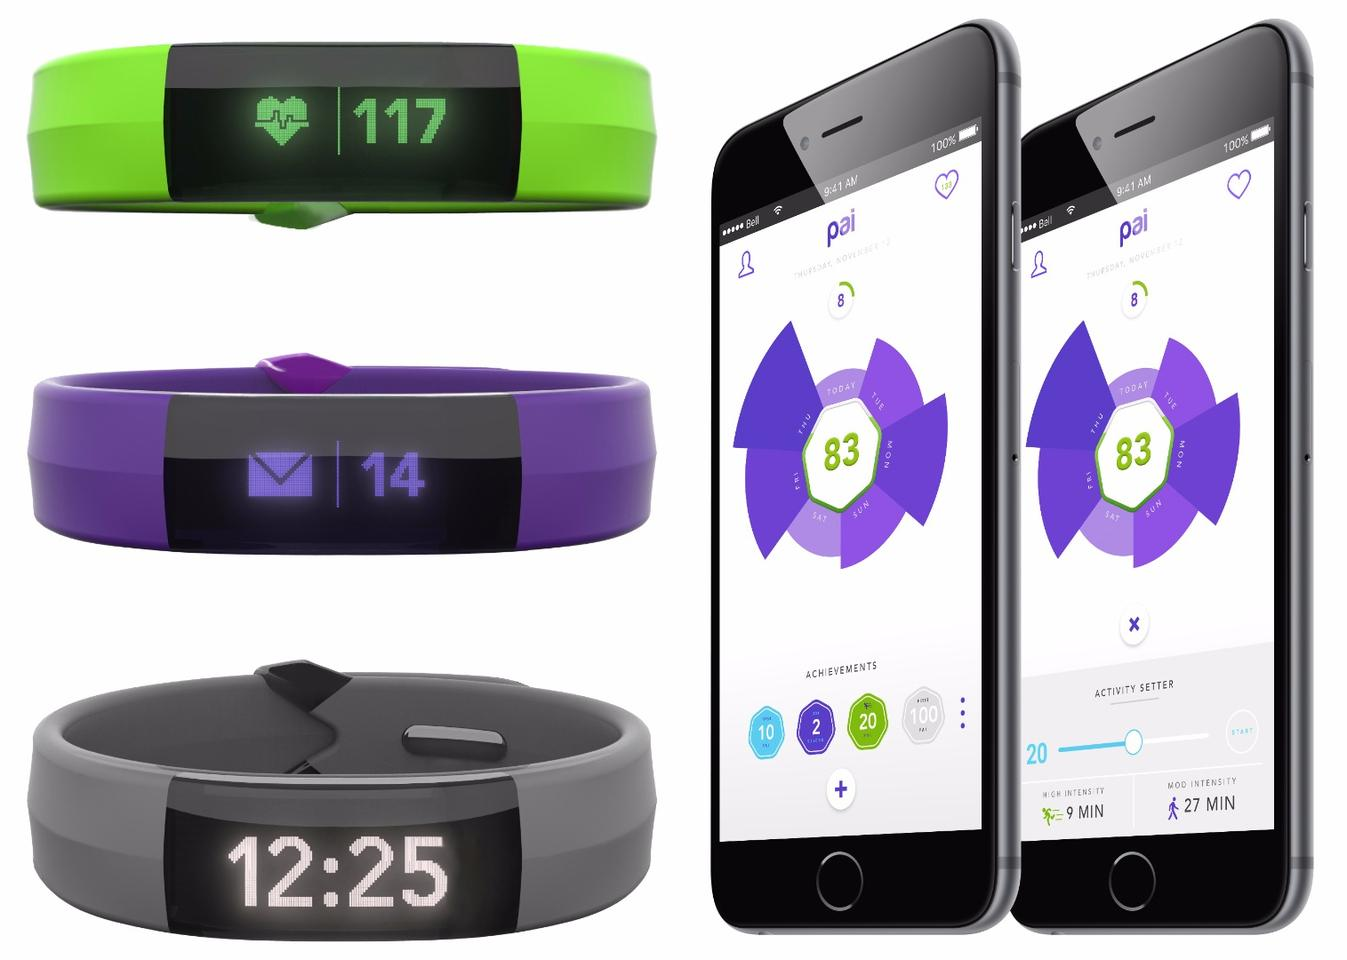 The Mio Slice activity tracker is due to go on sale later this year priced at US$100